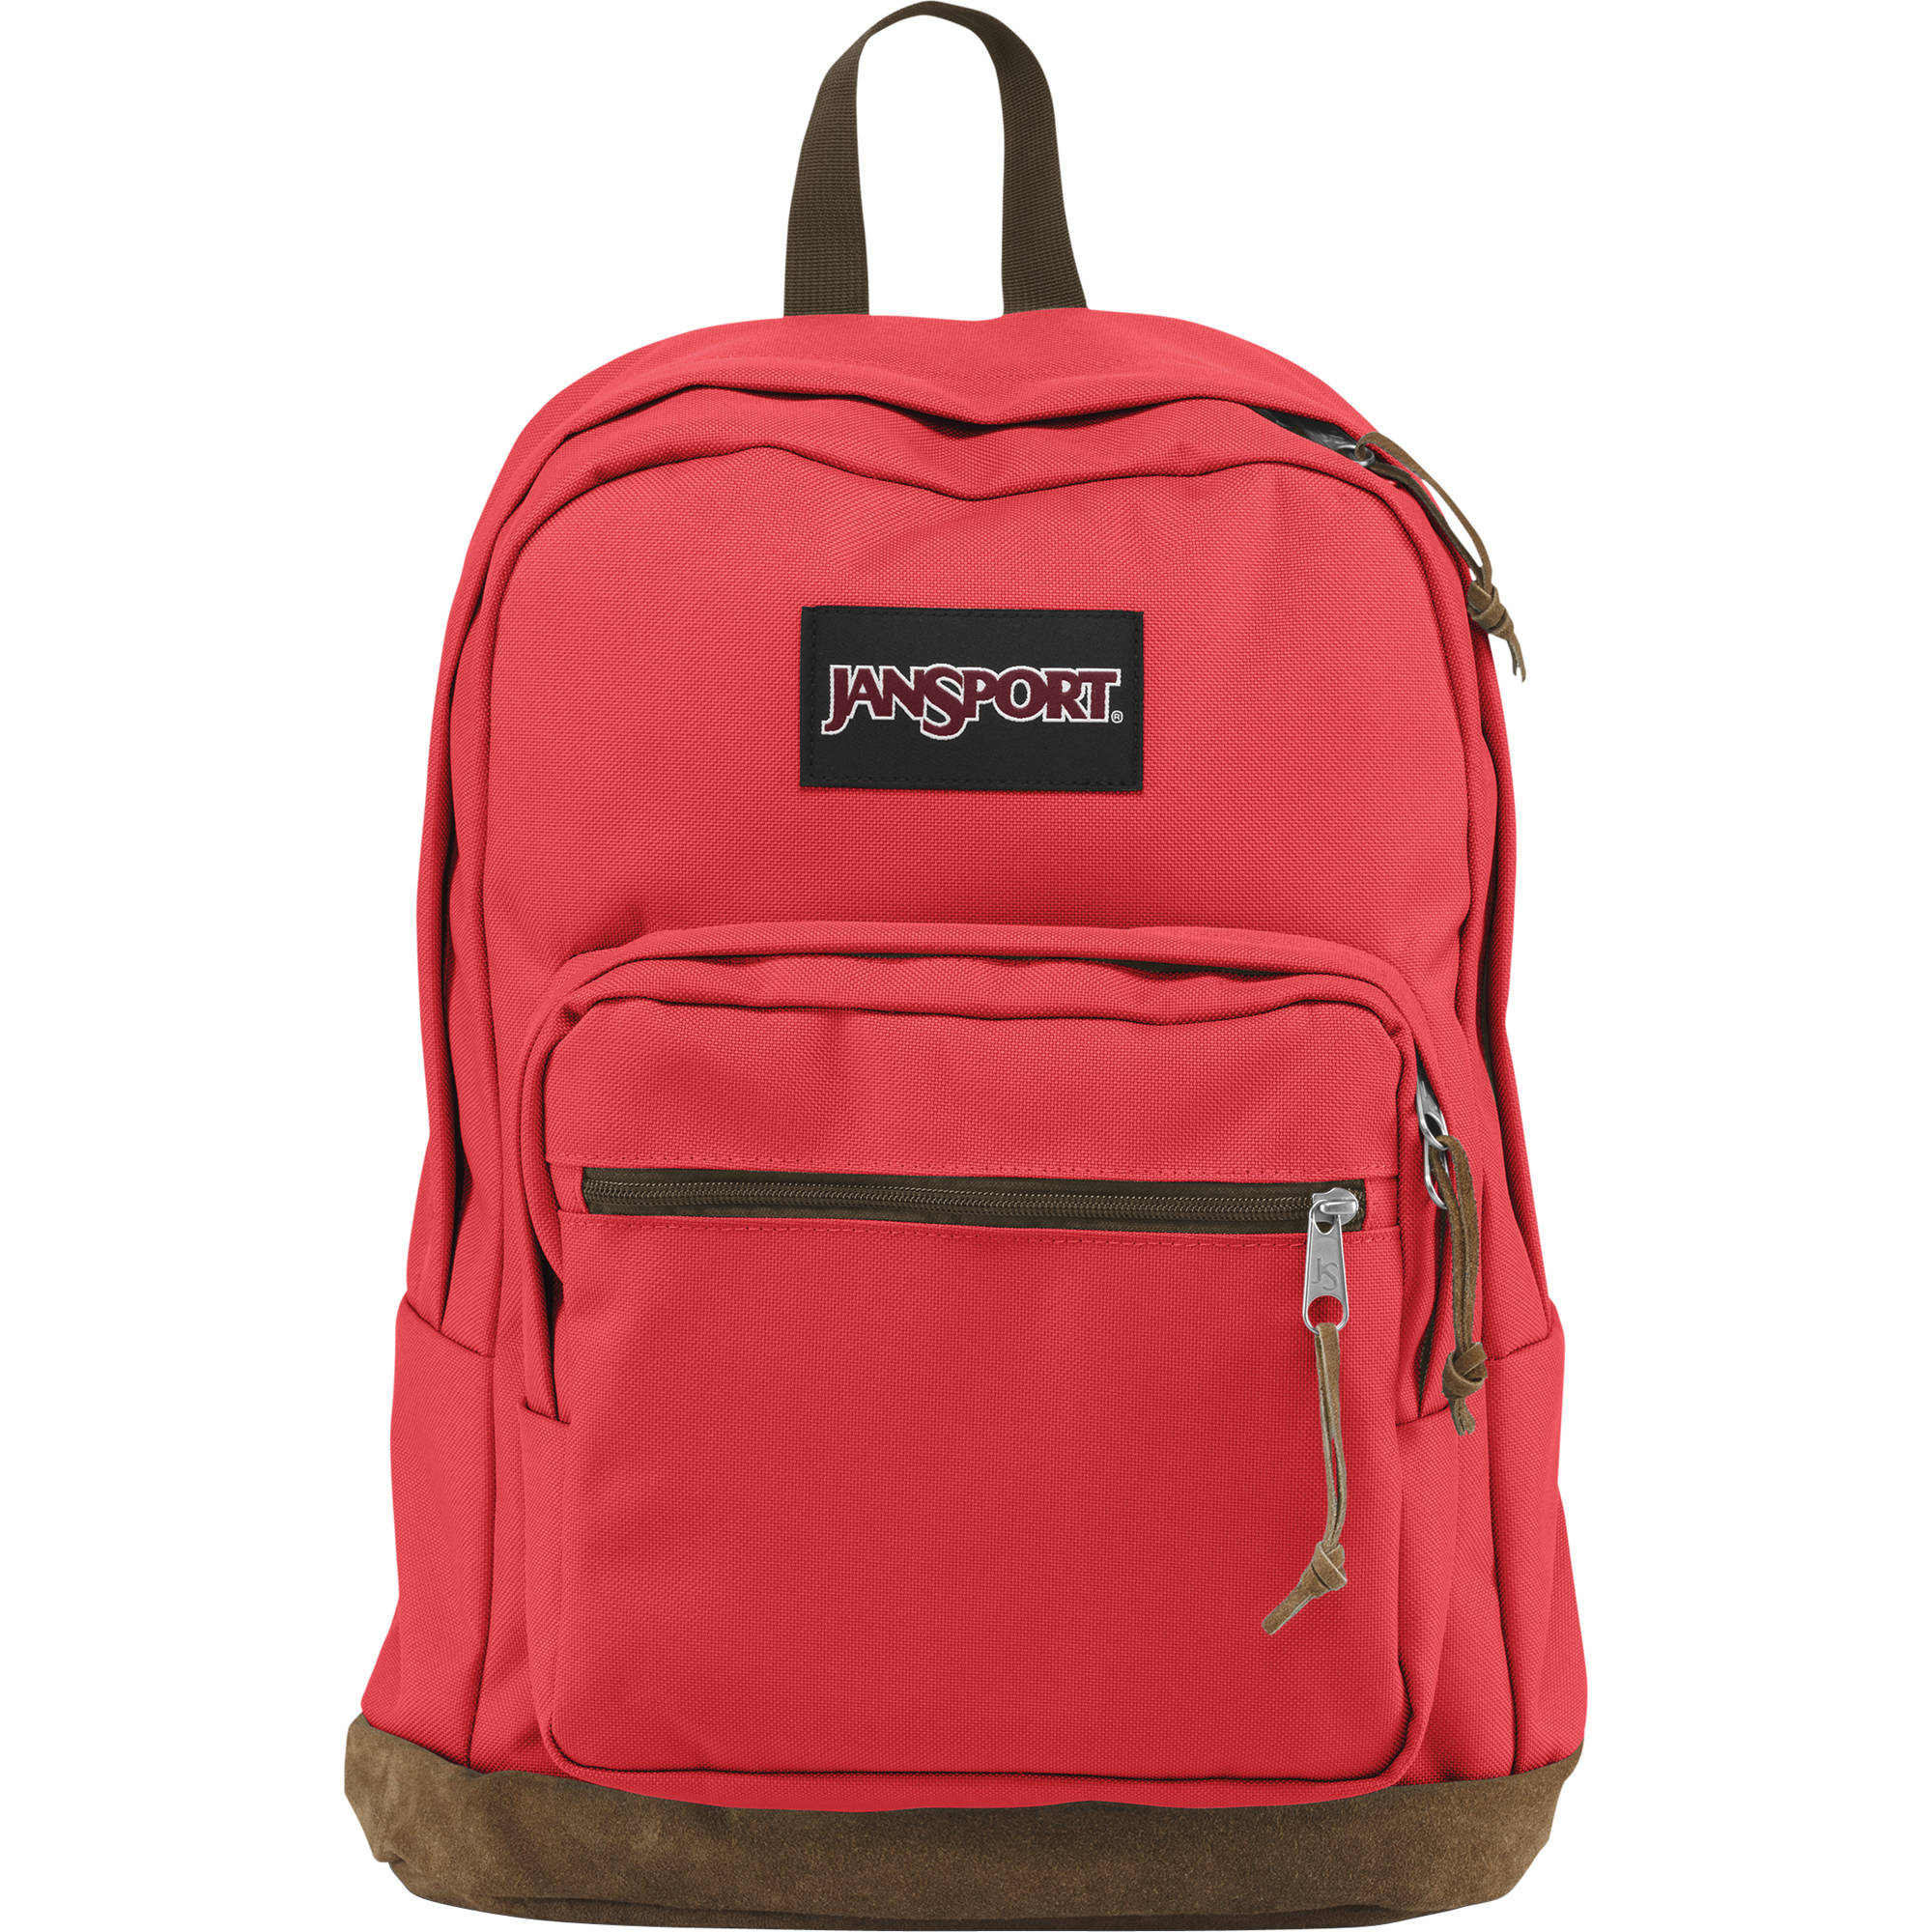 Coral Packs : JanSport TYP7008 Replacement for JanSport TYP72C9 B&H Photo